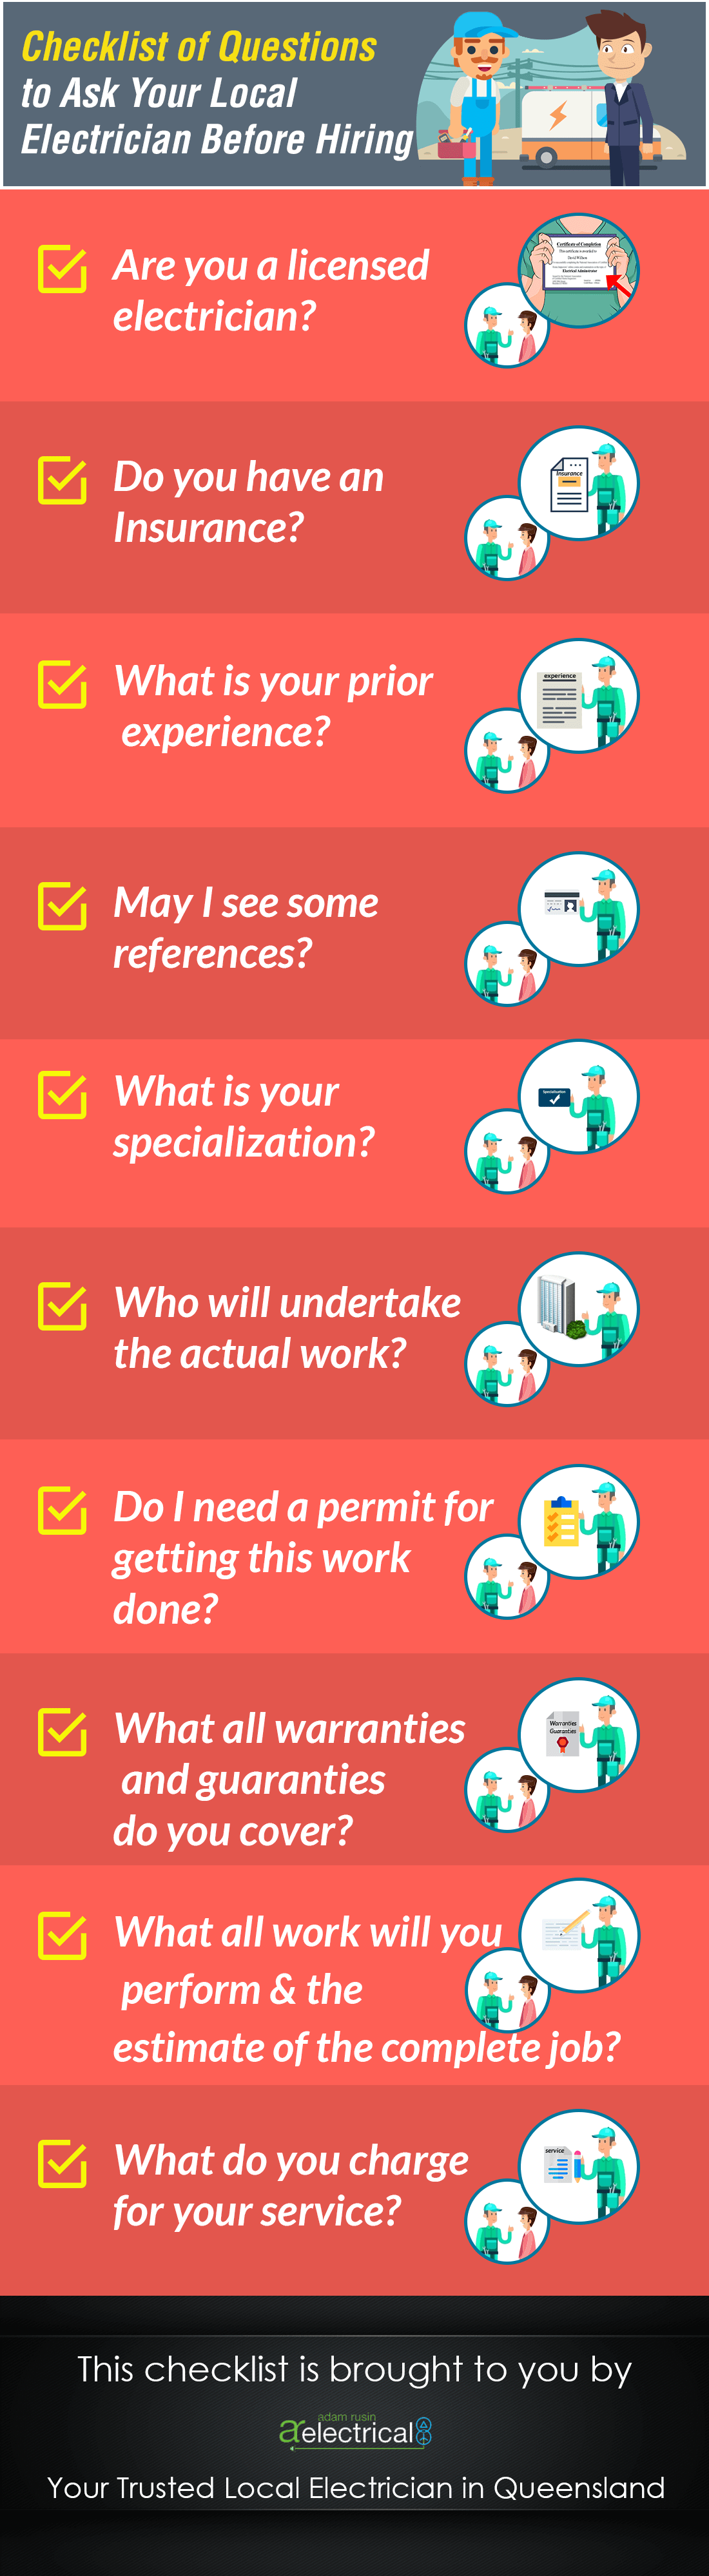 Checklist-of-Questions-to-Ask-Your-Local-Electrician-Before-Hiring